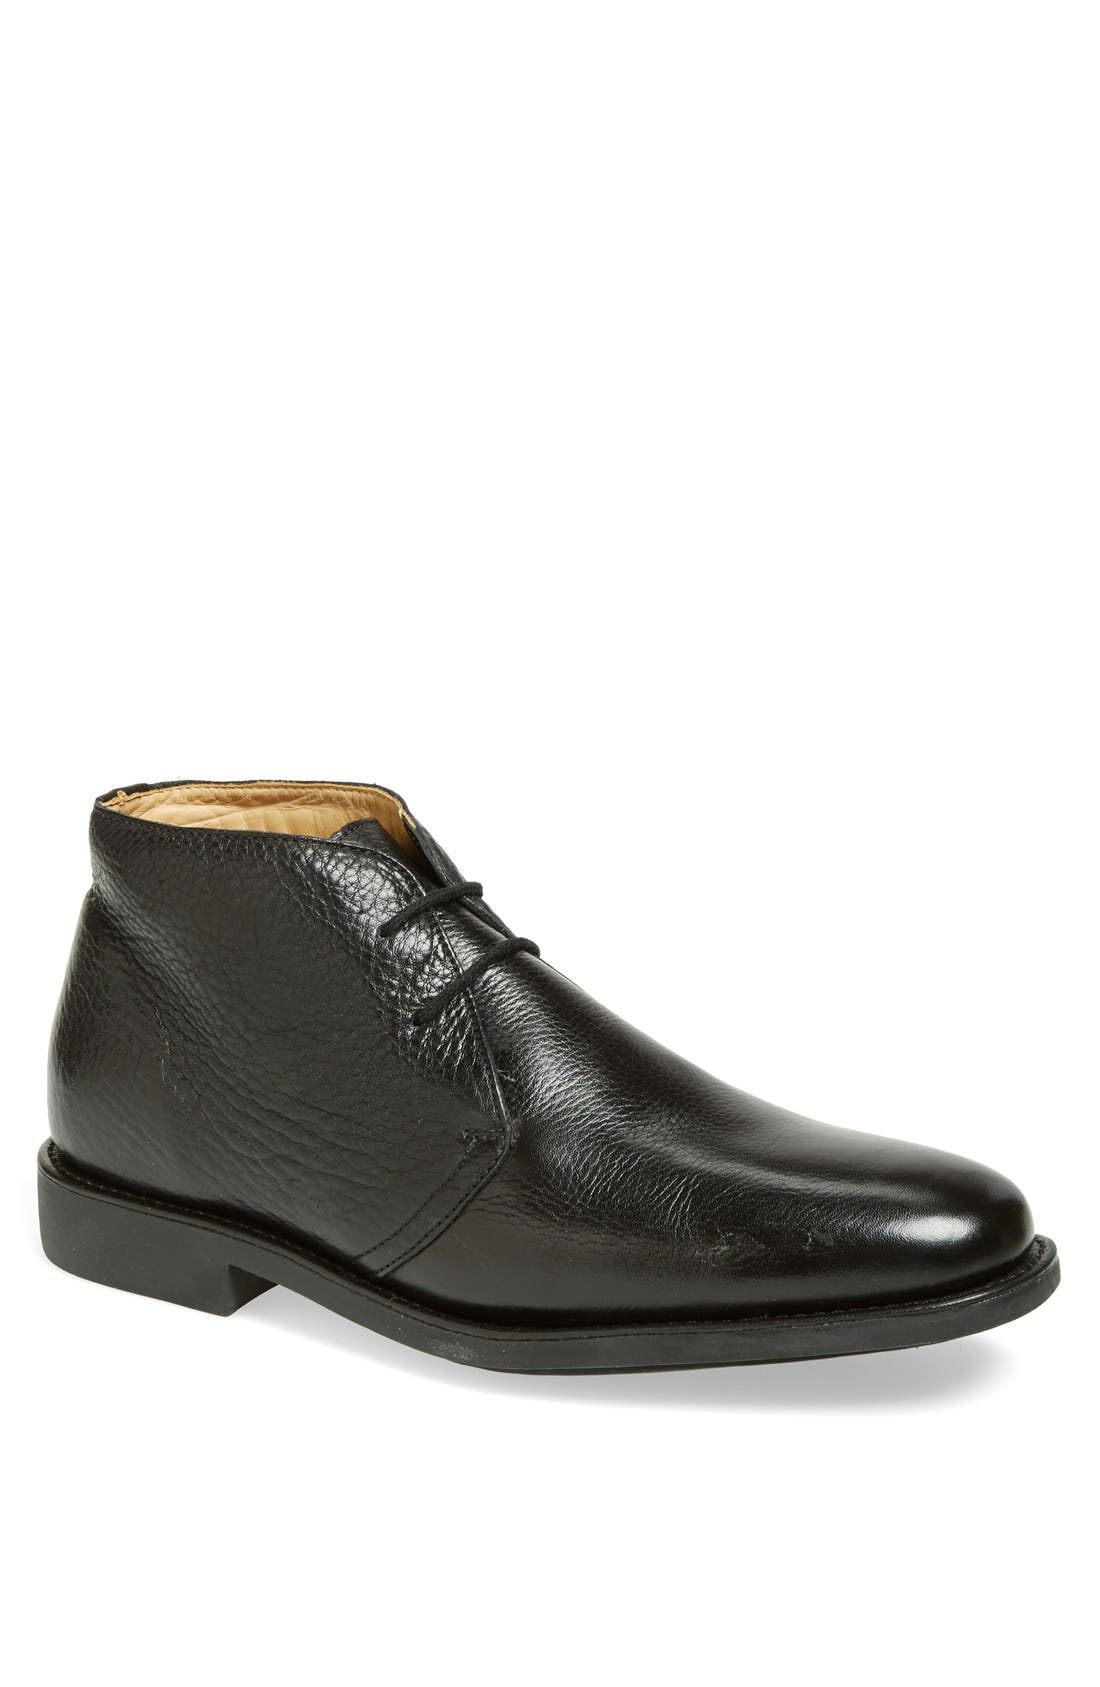 Main Image - Anatomic & Co Londrina Chukka Boot (Men)